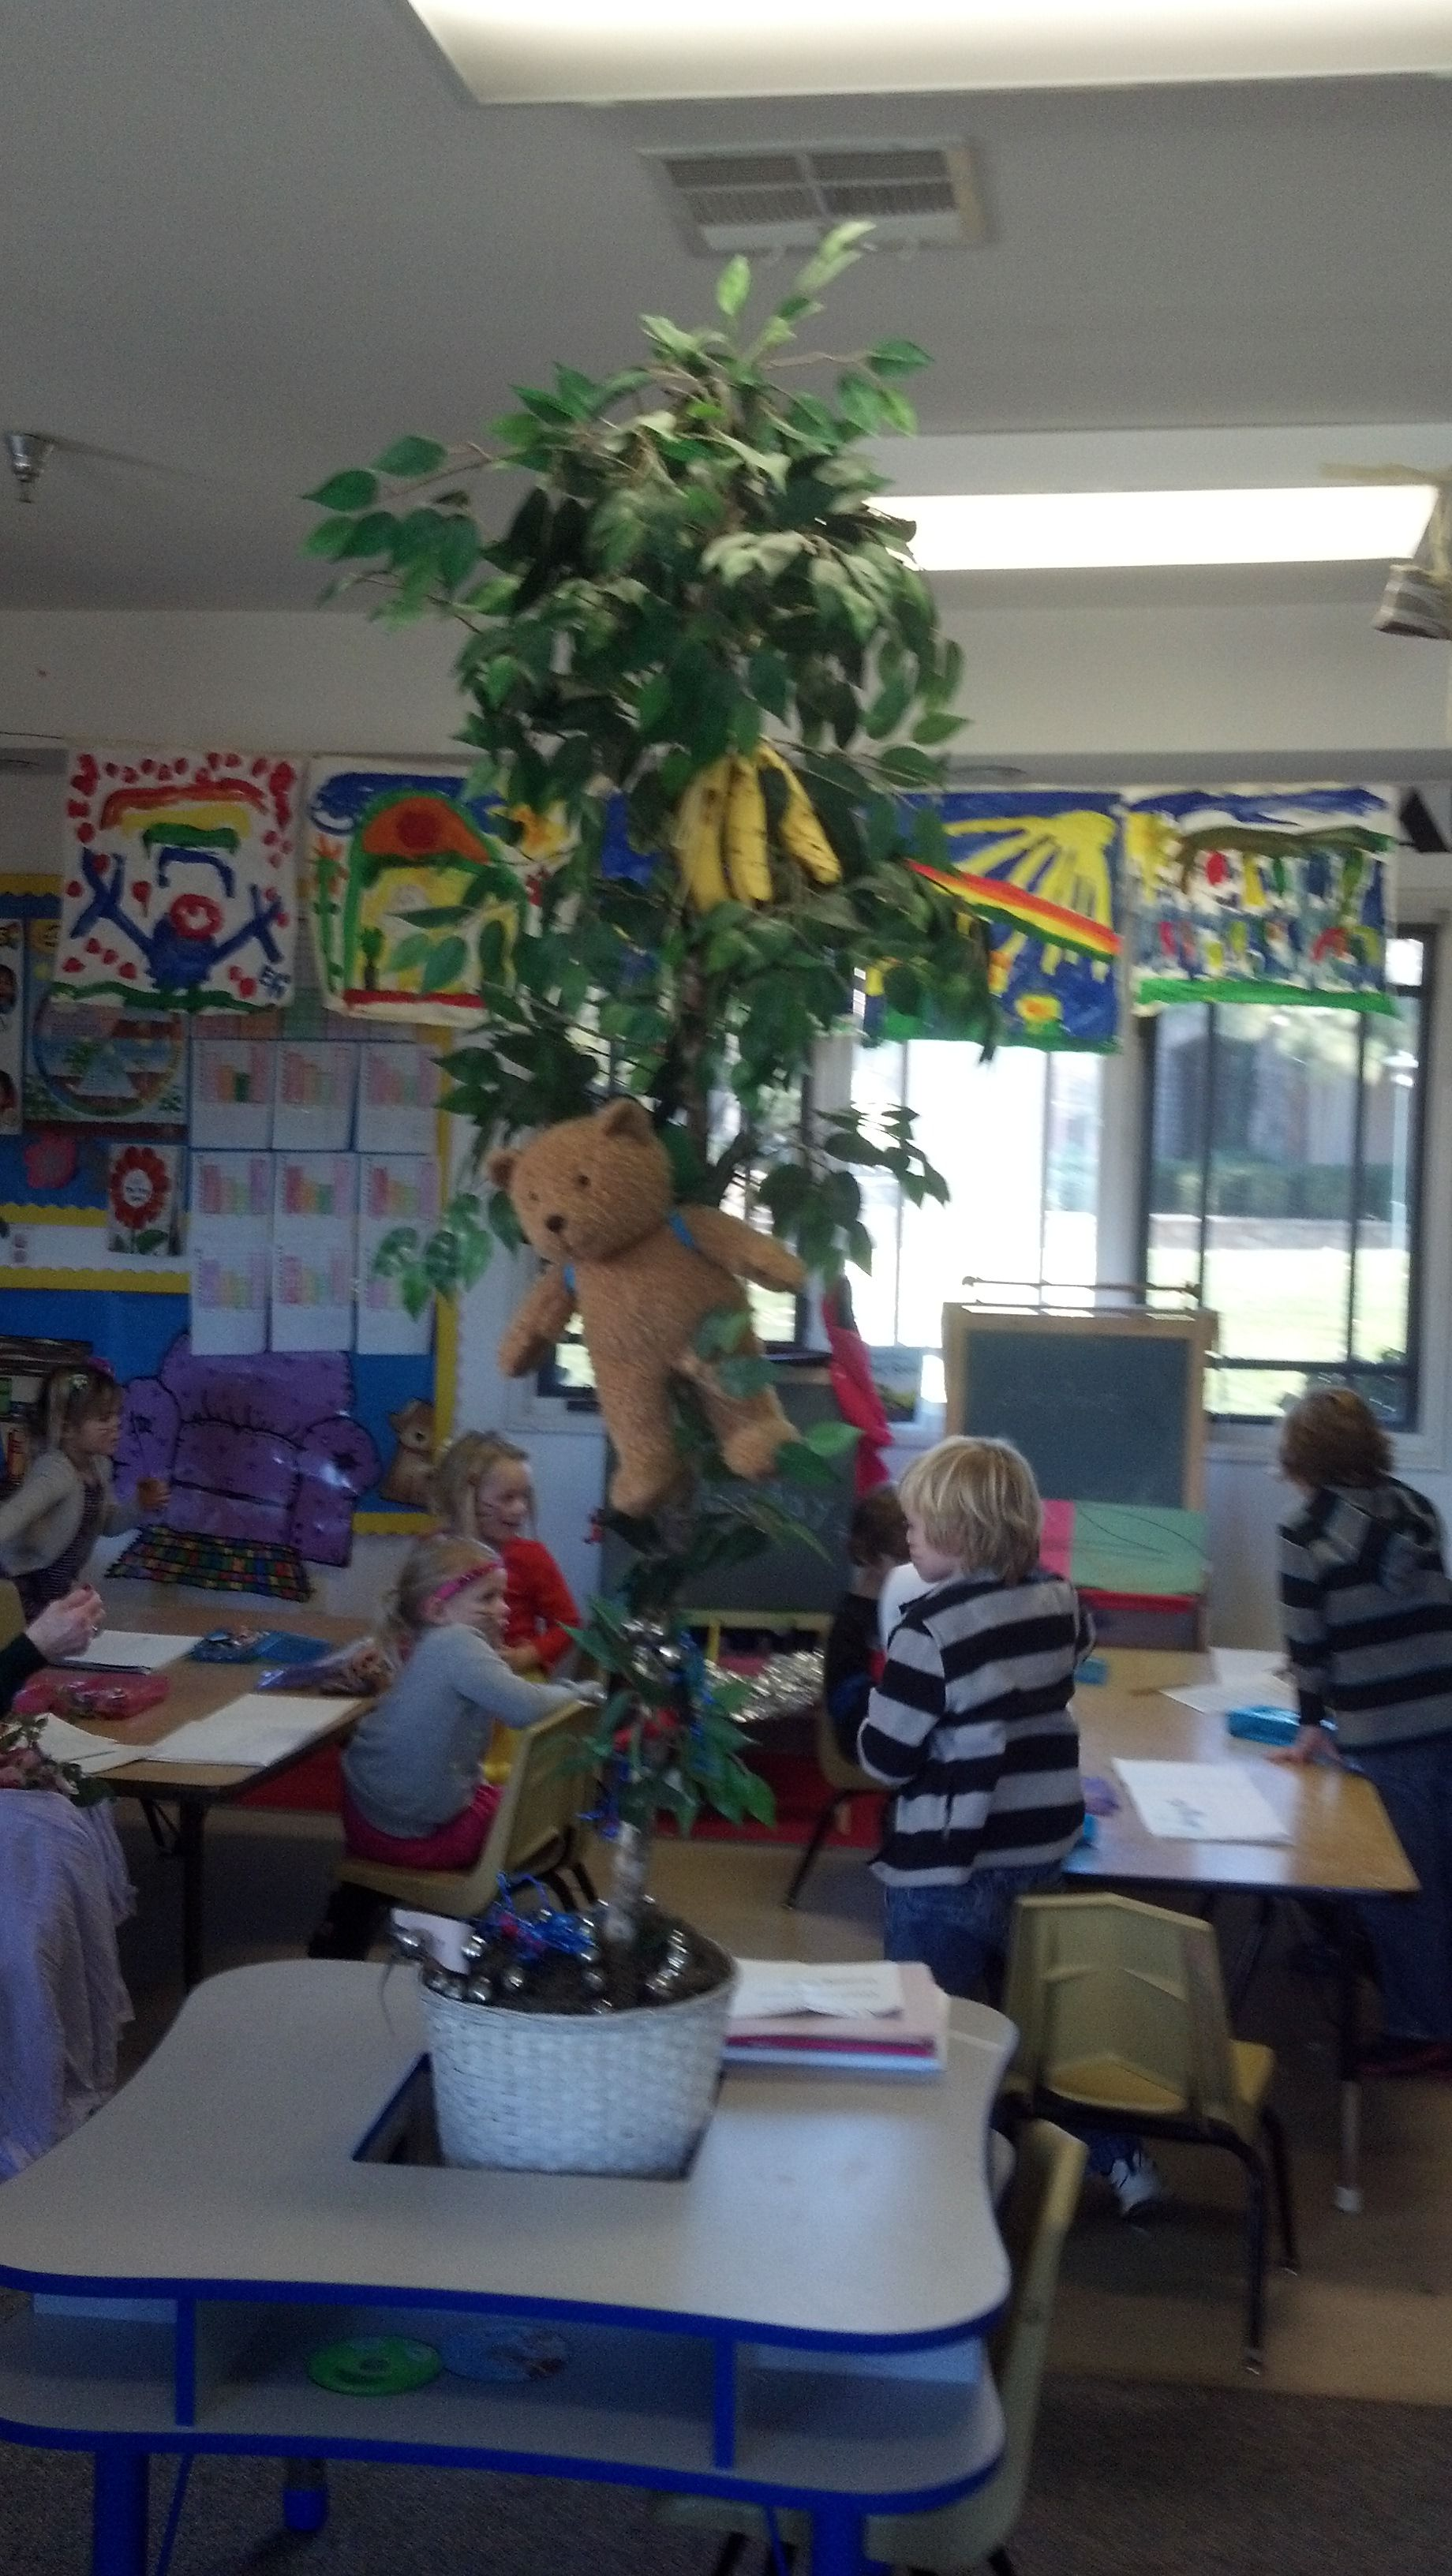 Wacky Wednesday Our Kindergarten Classroom Has Surprises Galore On Wacky Wednesday Brooms And